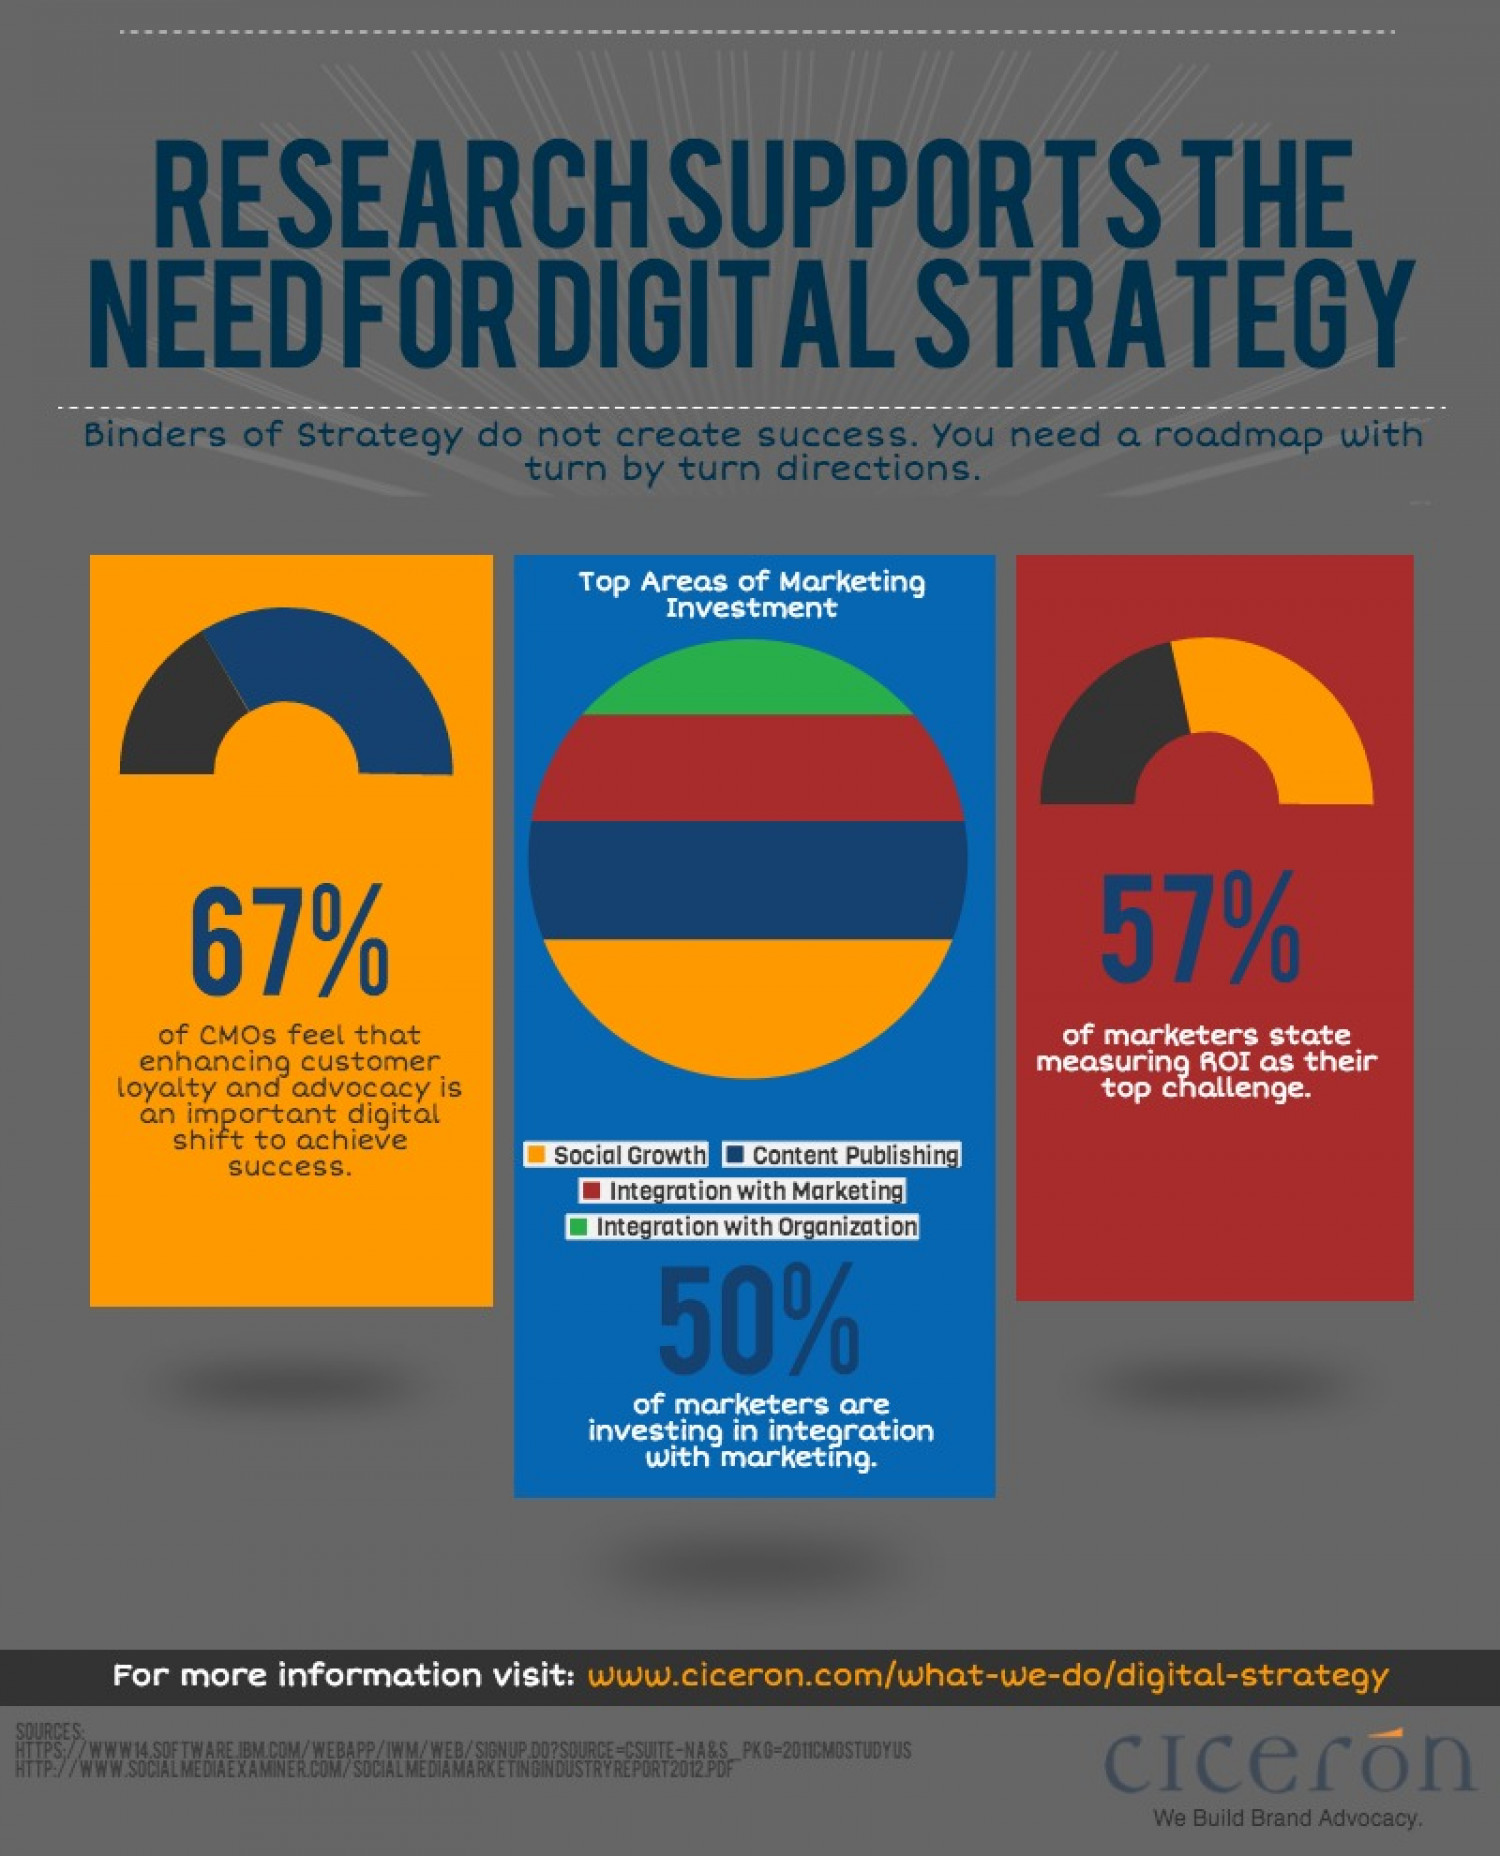 Binders of Strategy Don't Create Success Infographic